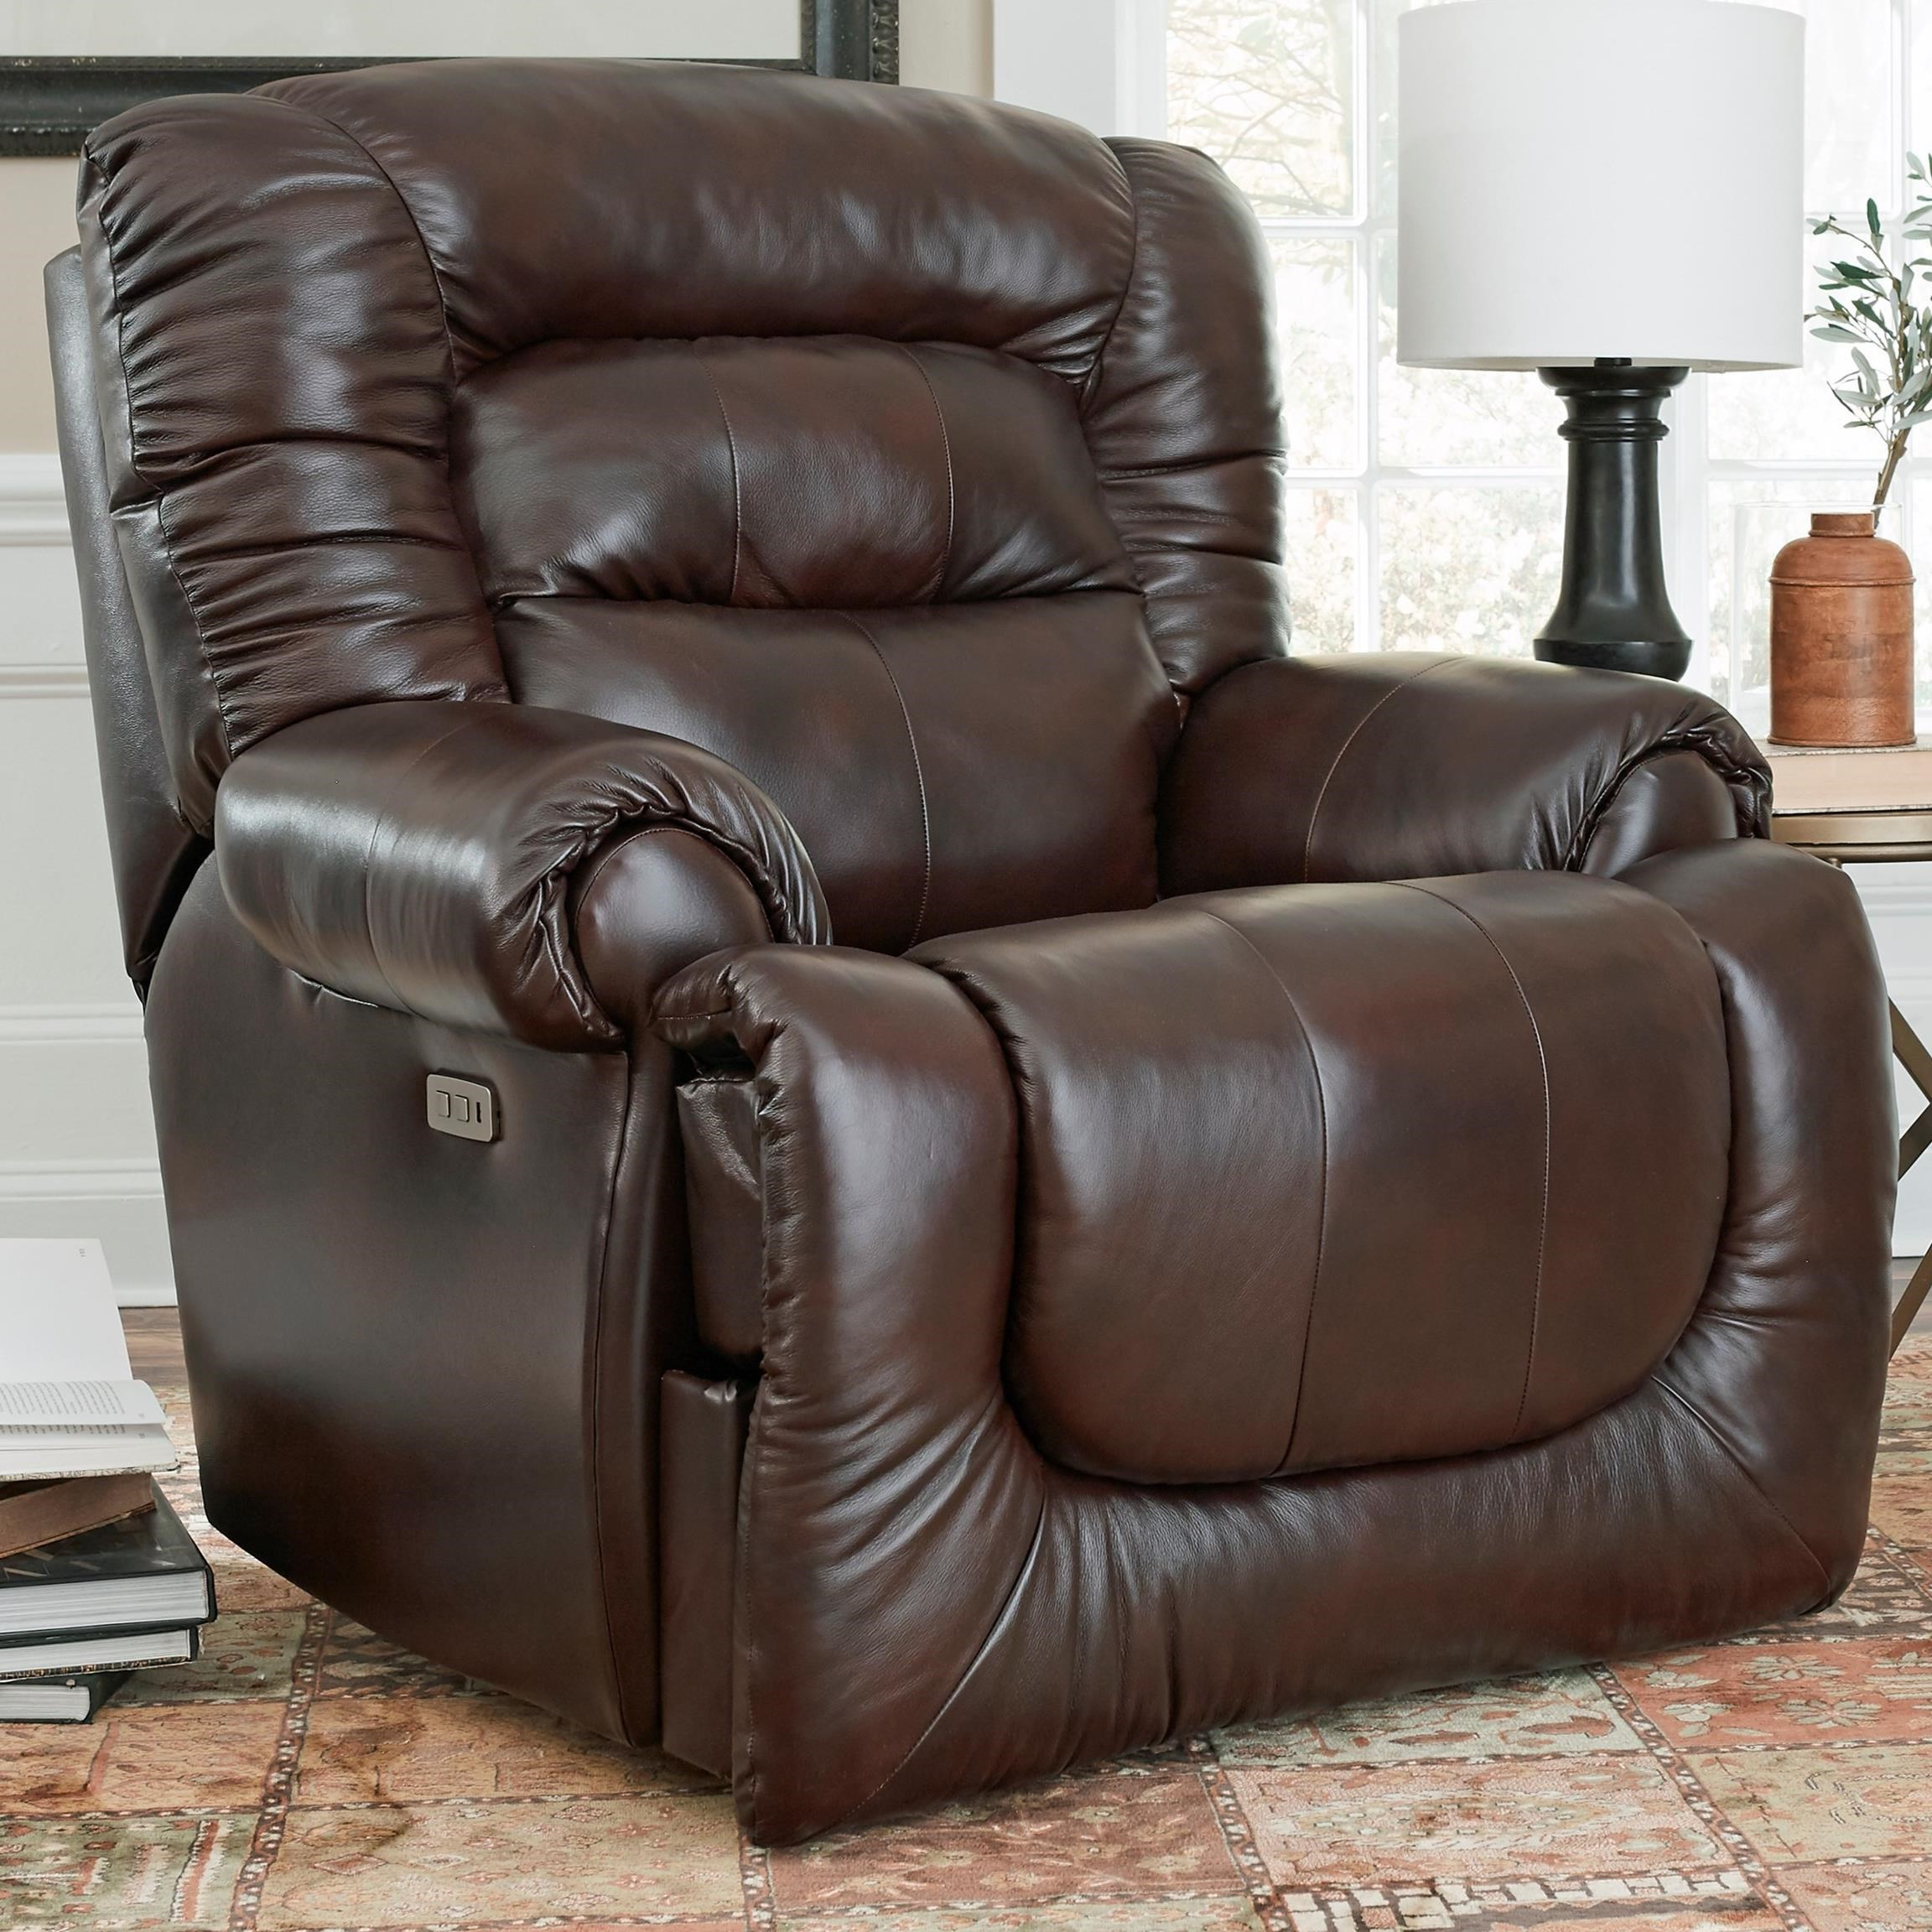 All Star Pwr Headrest Big Man's Wall Hugger Recliner by Southern Motion at Home Furnishings Direct